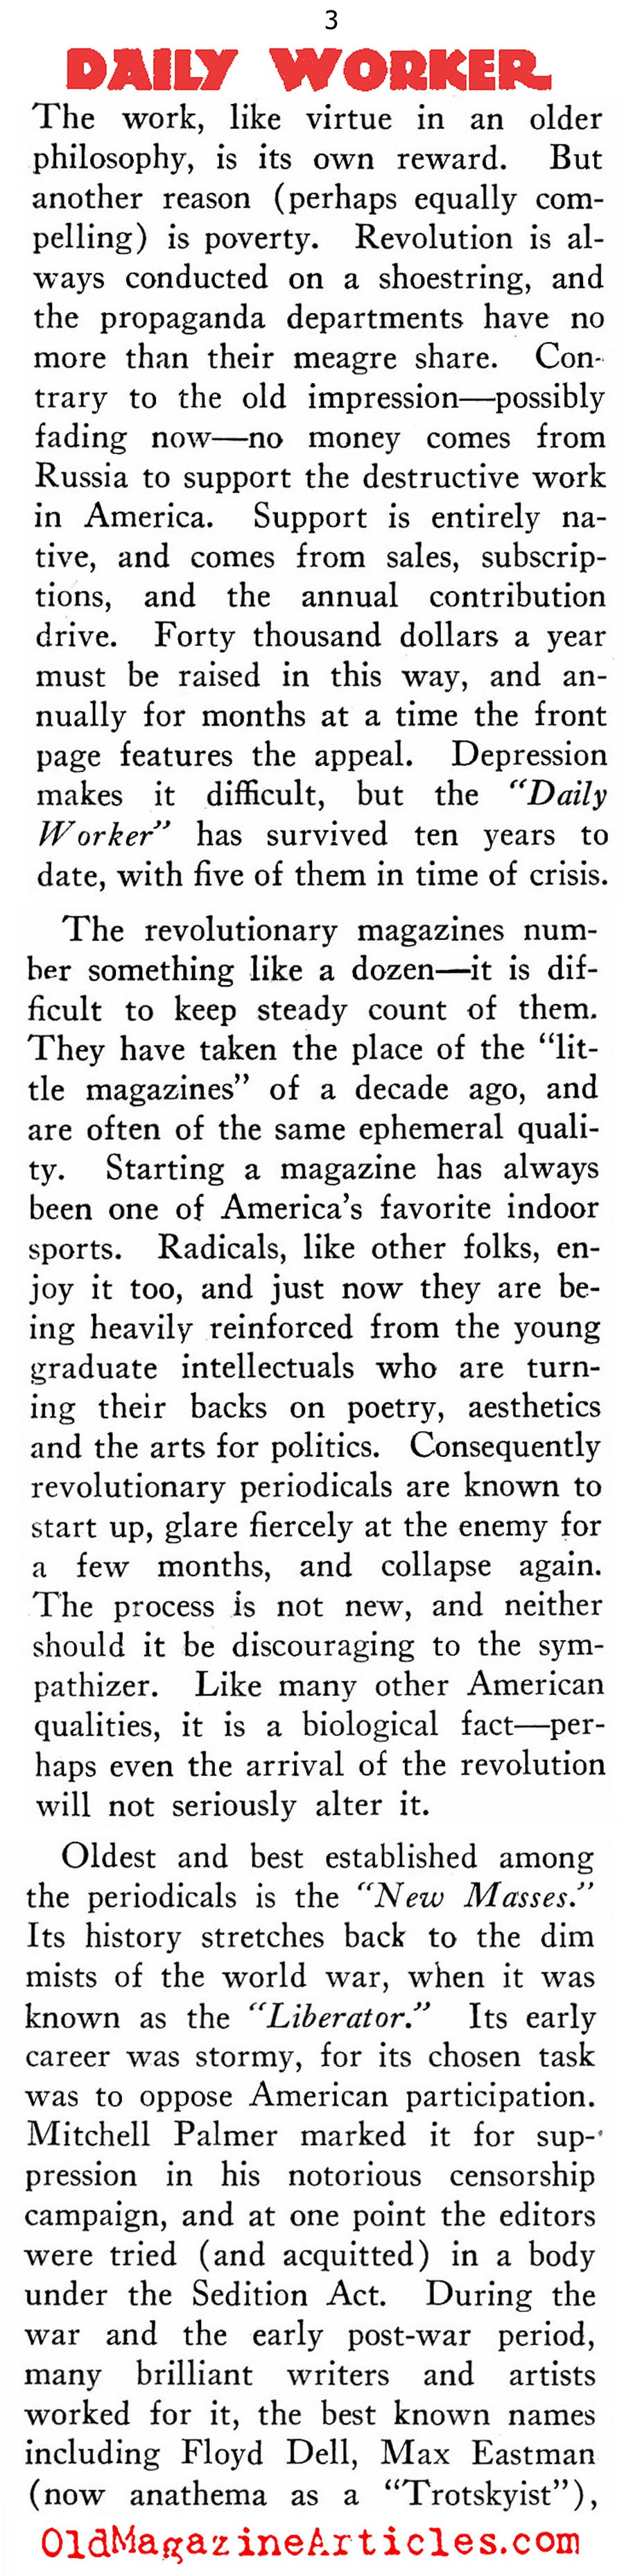 The Daily Worker (New Outlook, 1933)